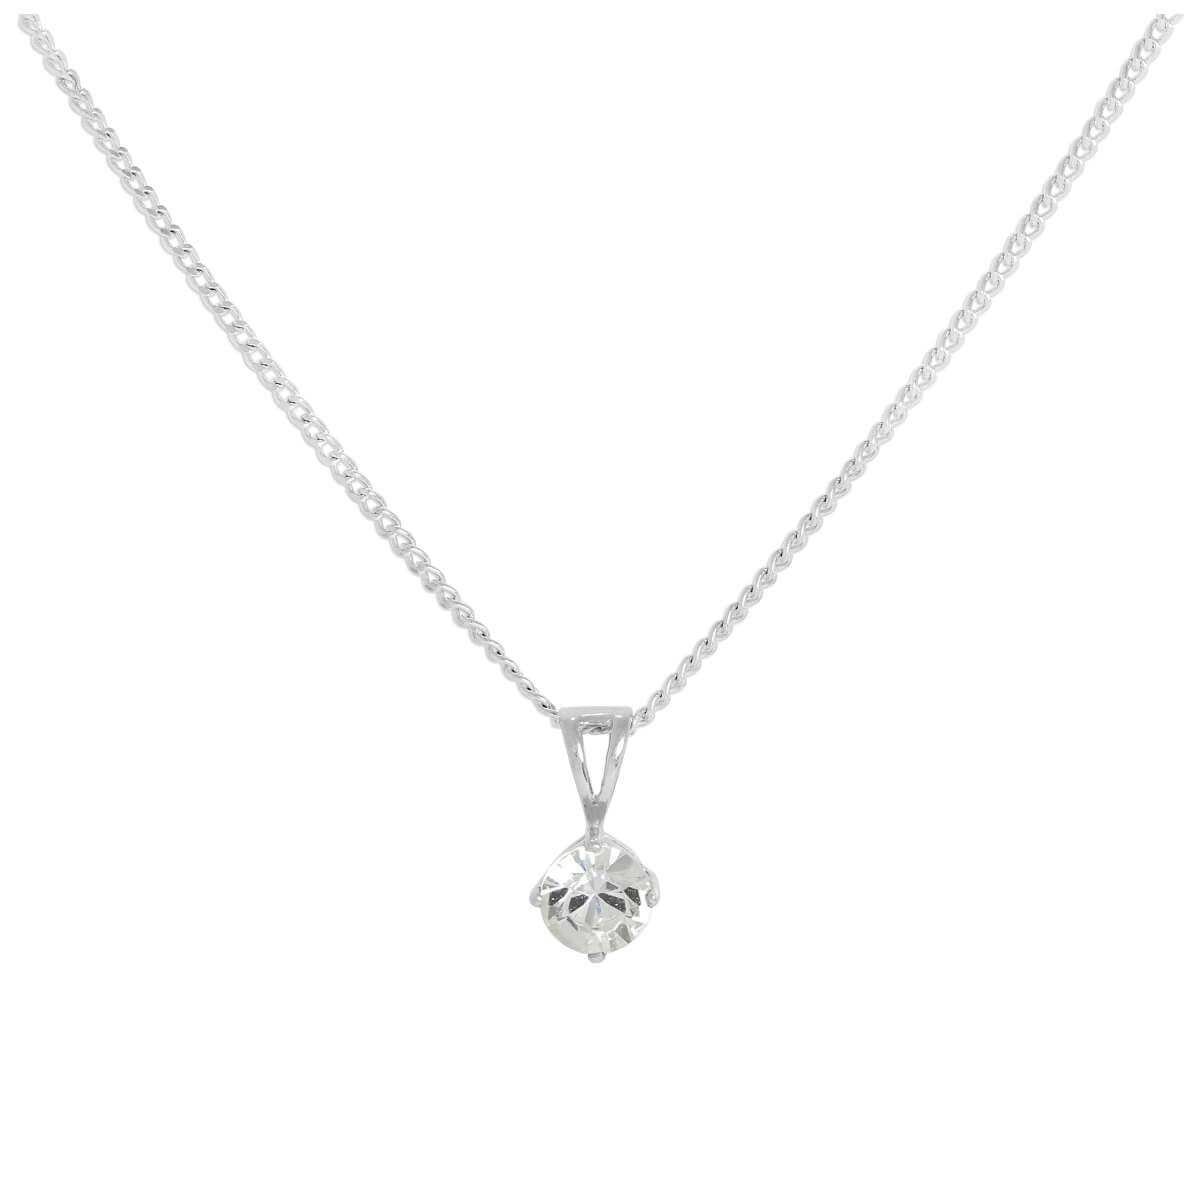 Sterling Silver & Clear Crystal Made with Swarovski Elements April Birthstone Pendant Necklace 16 - 24 Inches